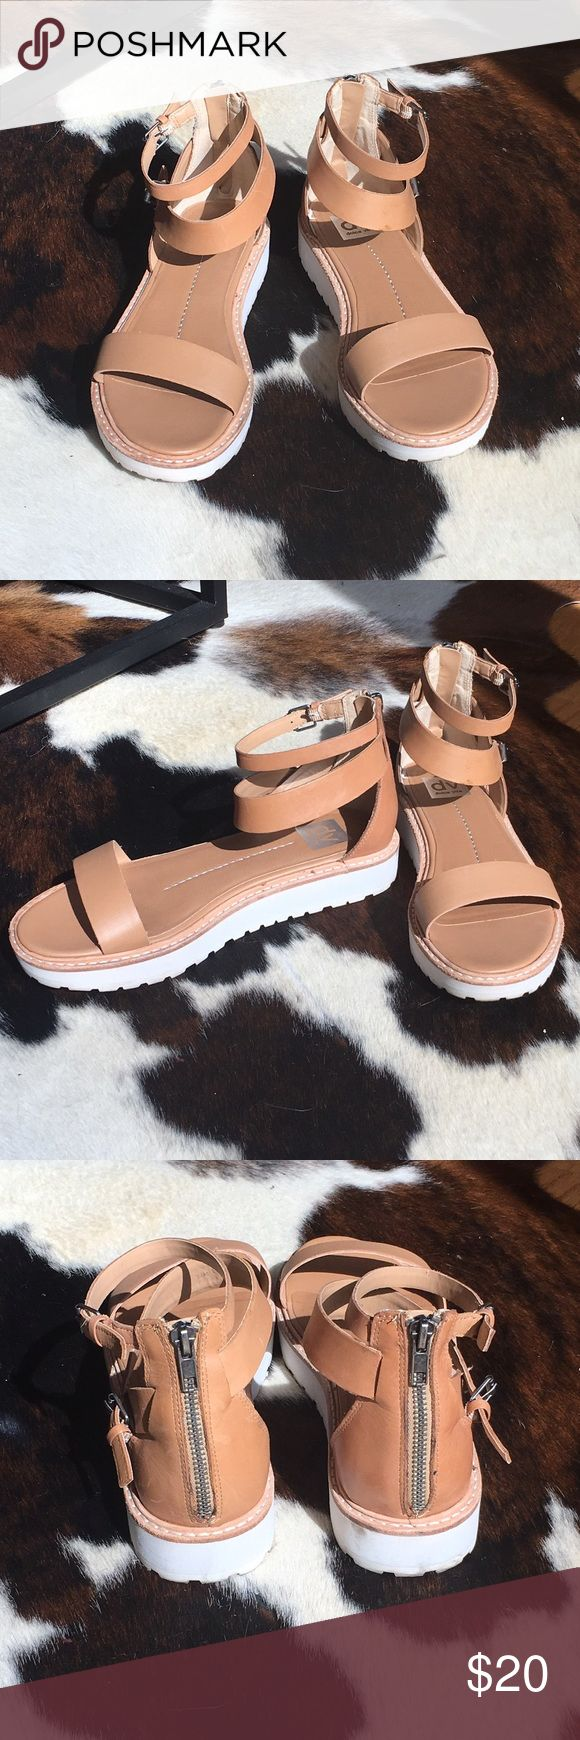 """Tan ankle strap flat forms Edgy tan dolce vita platform sandals with a double ankle strap, a minimalist front strap, and silver hardware. They have a zipper in the back so they are easy to get on. The platform is a modern white and about 1"""". Barely worn and in good condition with only minor discoloration on the sole. DV by Dolce Vita Shoes Platforms"""